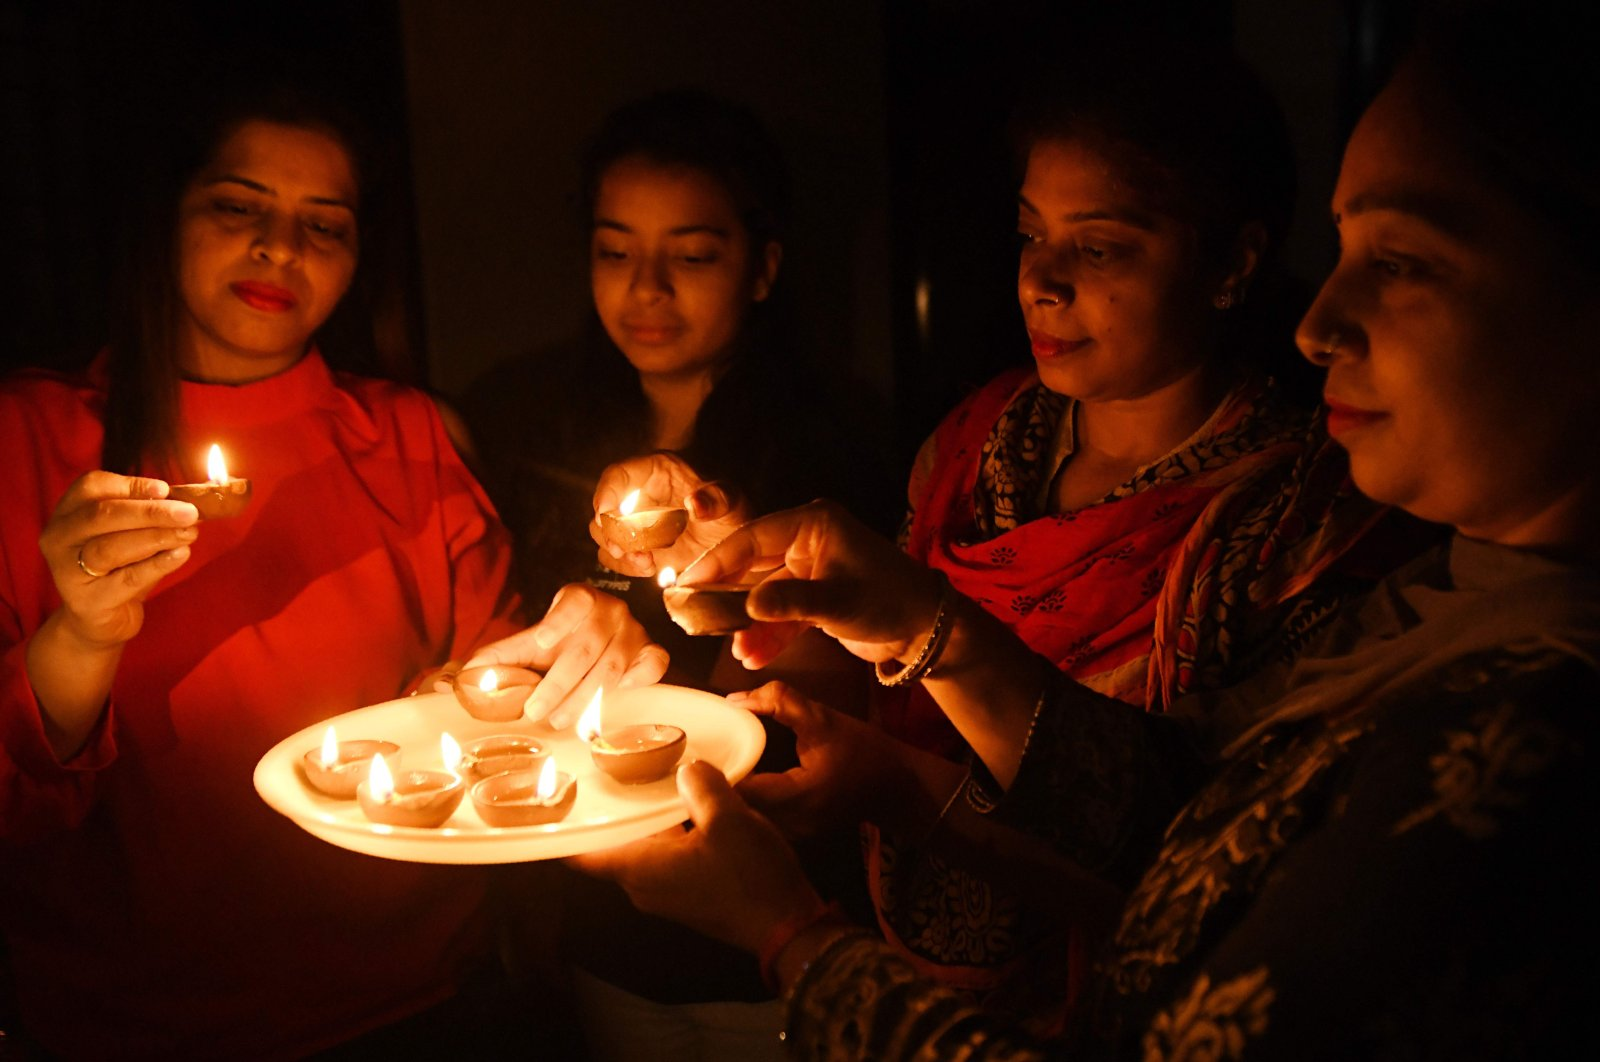 """Residents light """"diyas,"""" or oil lamps, in a show of unity and solidarity in the fight against the coronavirus pandemic in Amritsar, India, Sunday, April 5, 2020. (AFP Photo)"""